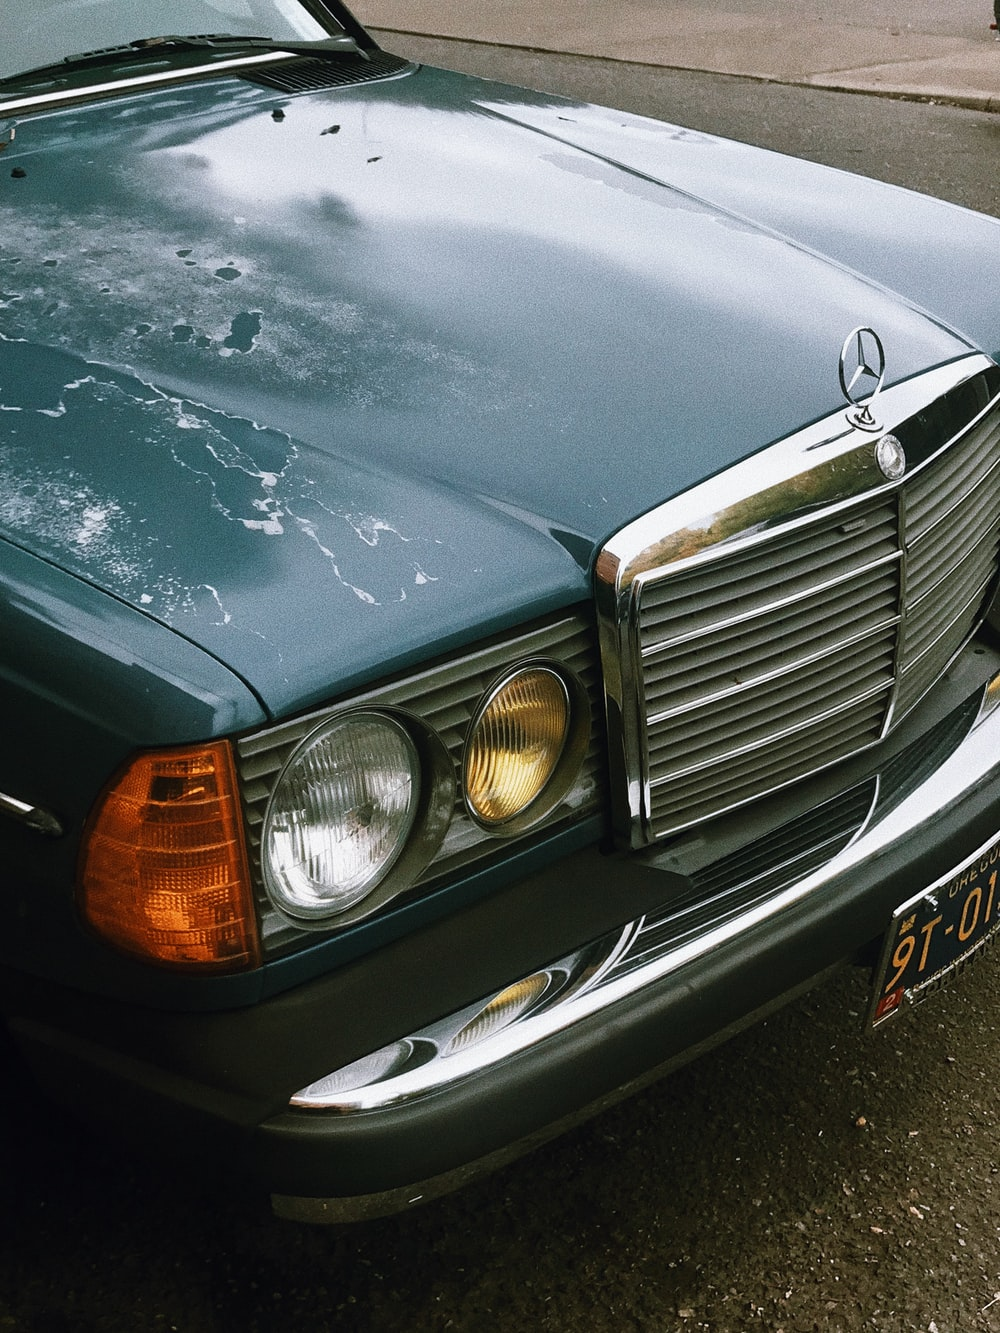 Mercedes Benz Of Portland >> Mercedes Benz Of Portland Pictures Download Free Images On